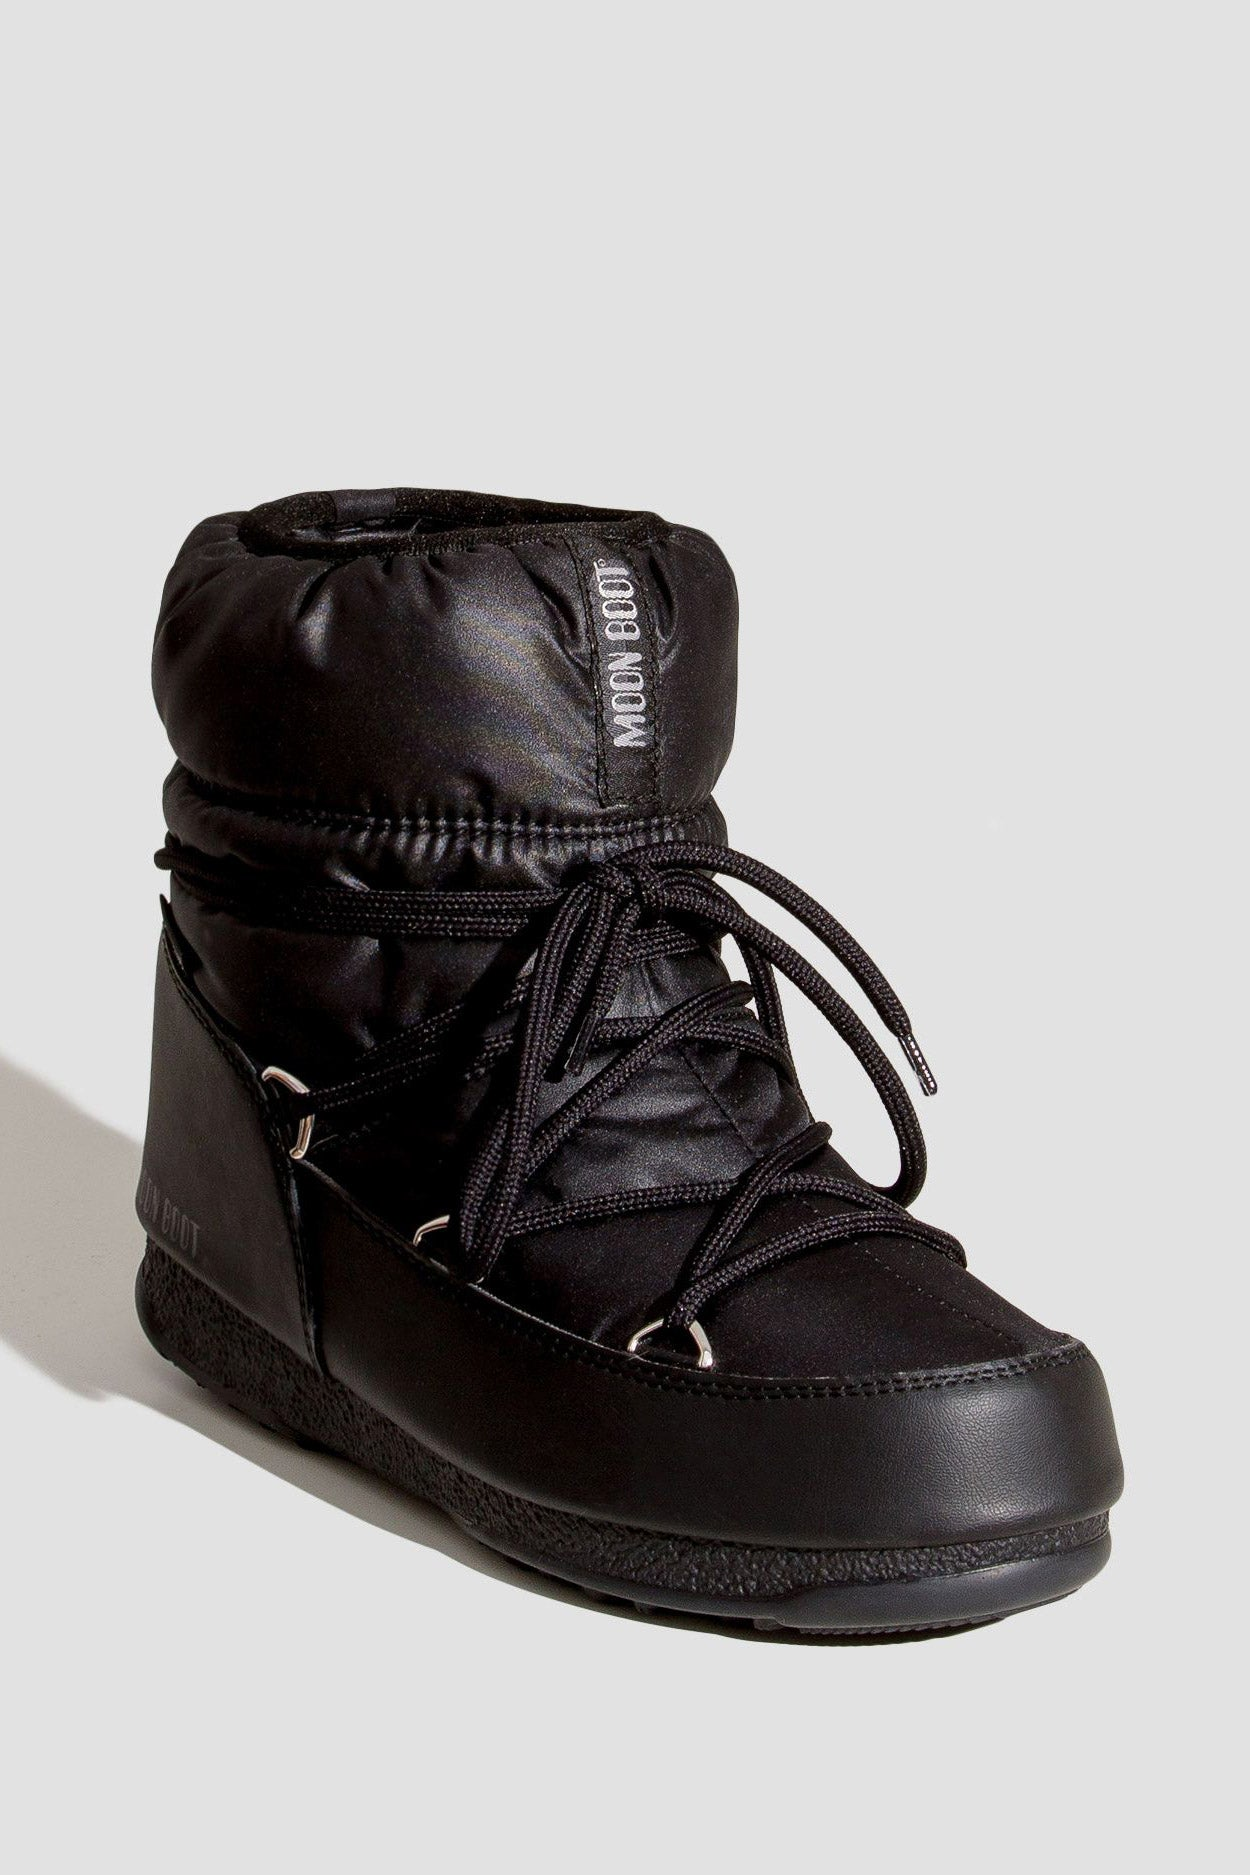 BUTY MOON BOOT LOW NYLON WP 2 BLACK